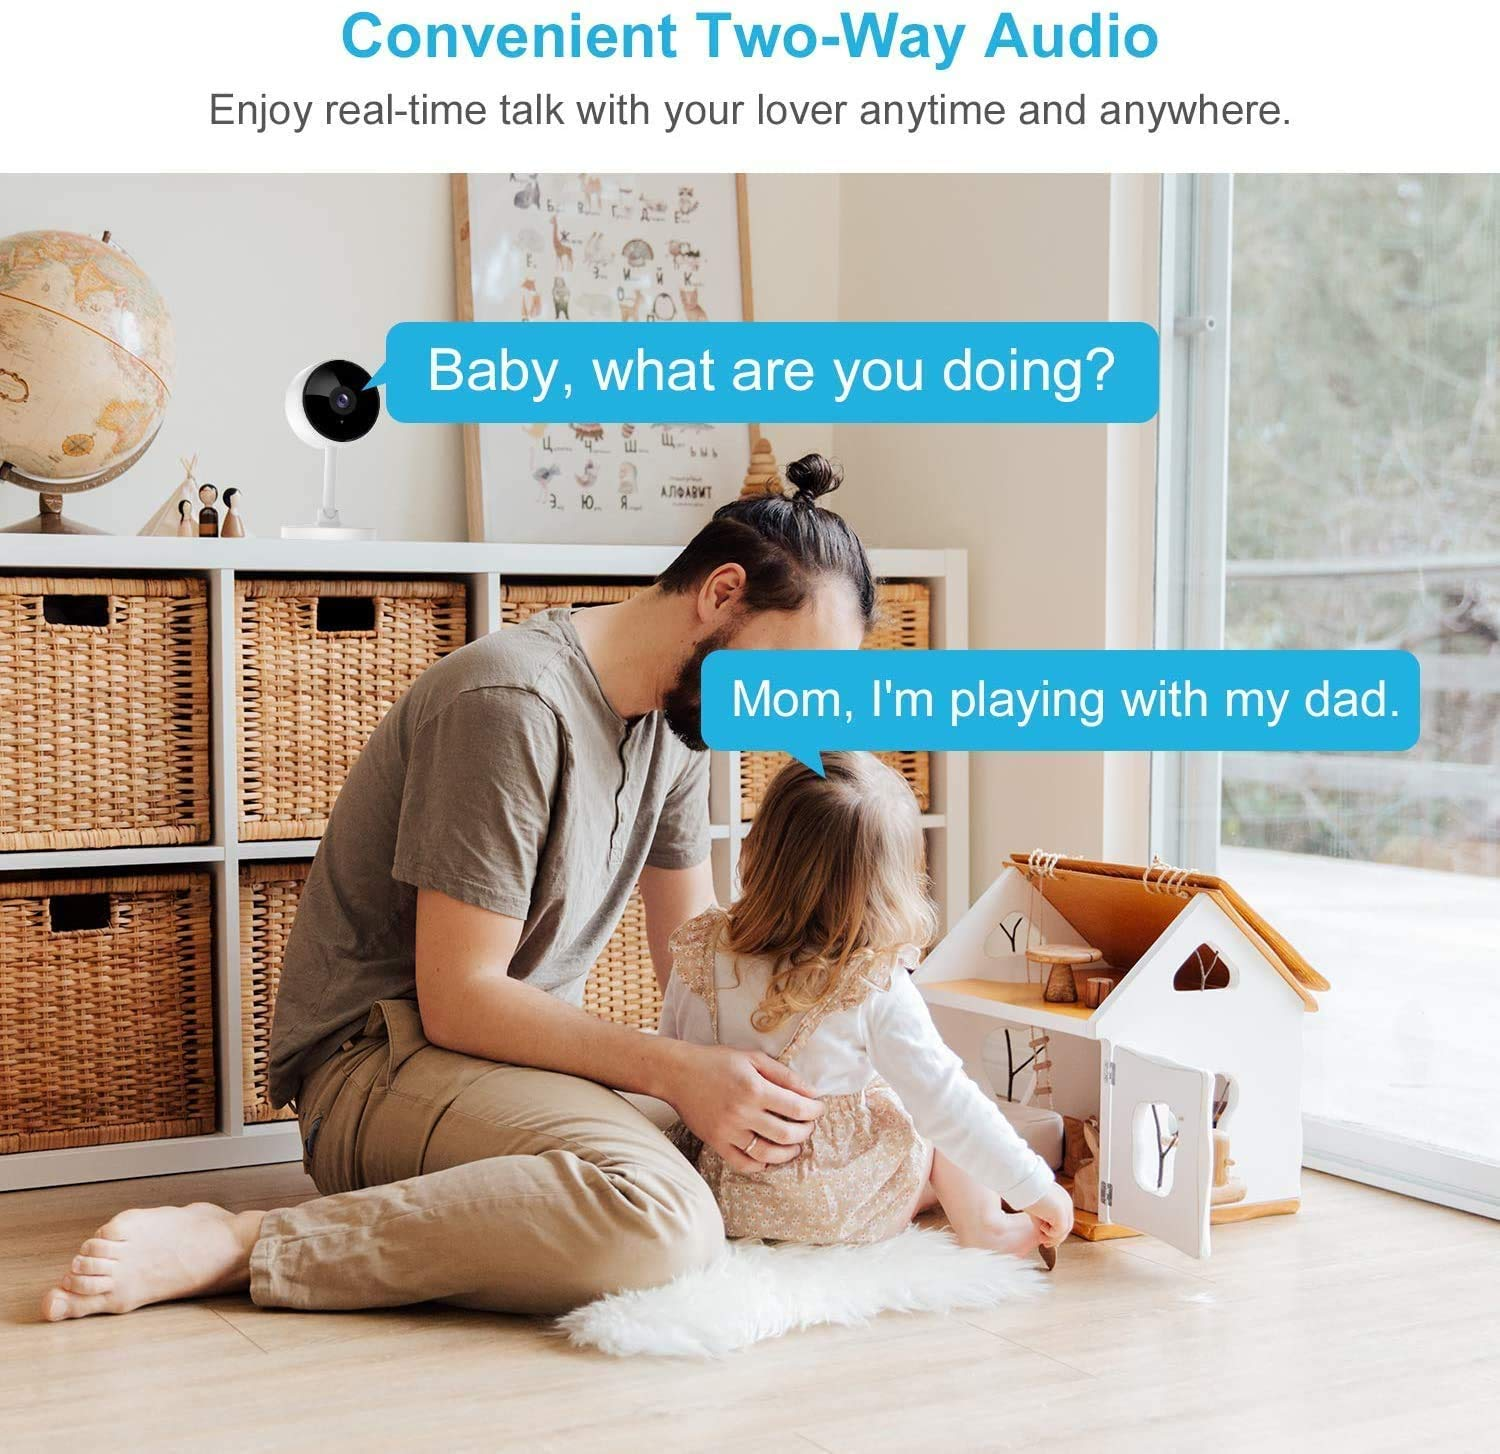 Wifi Camera, Littlelf 1080P Home Security Camera for Baby, Elder, Pet, Wireless Camera Indoor with Motion Detection, Reverse Call, 2-Way Audio, Night Vision, Works with Alexa